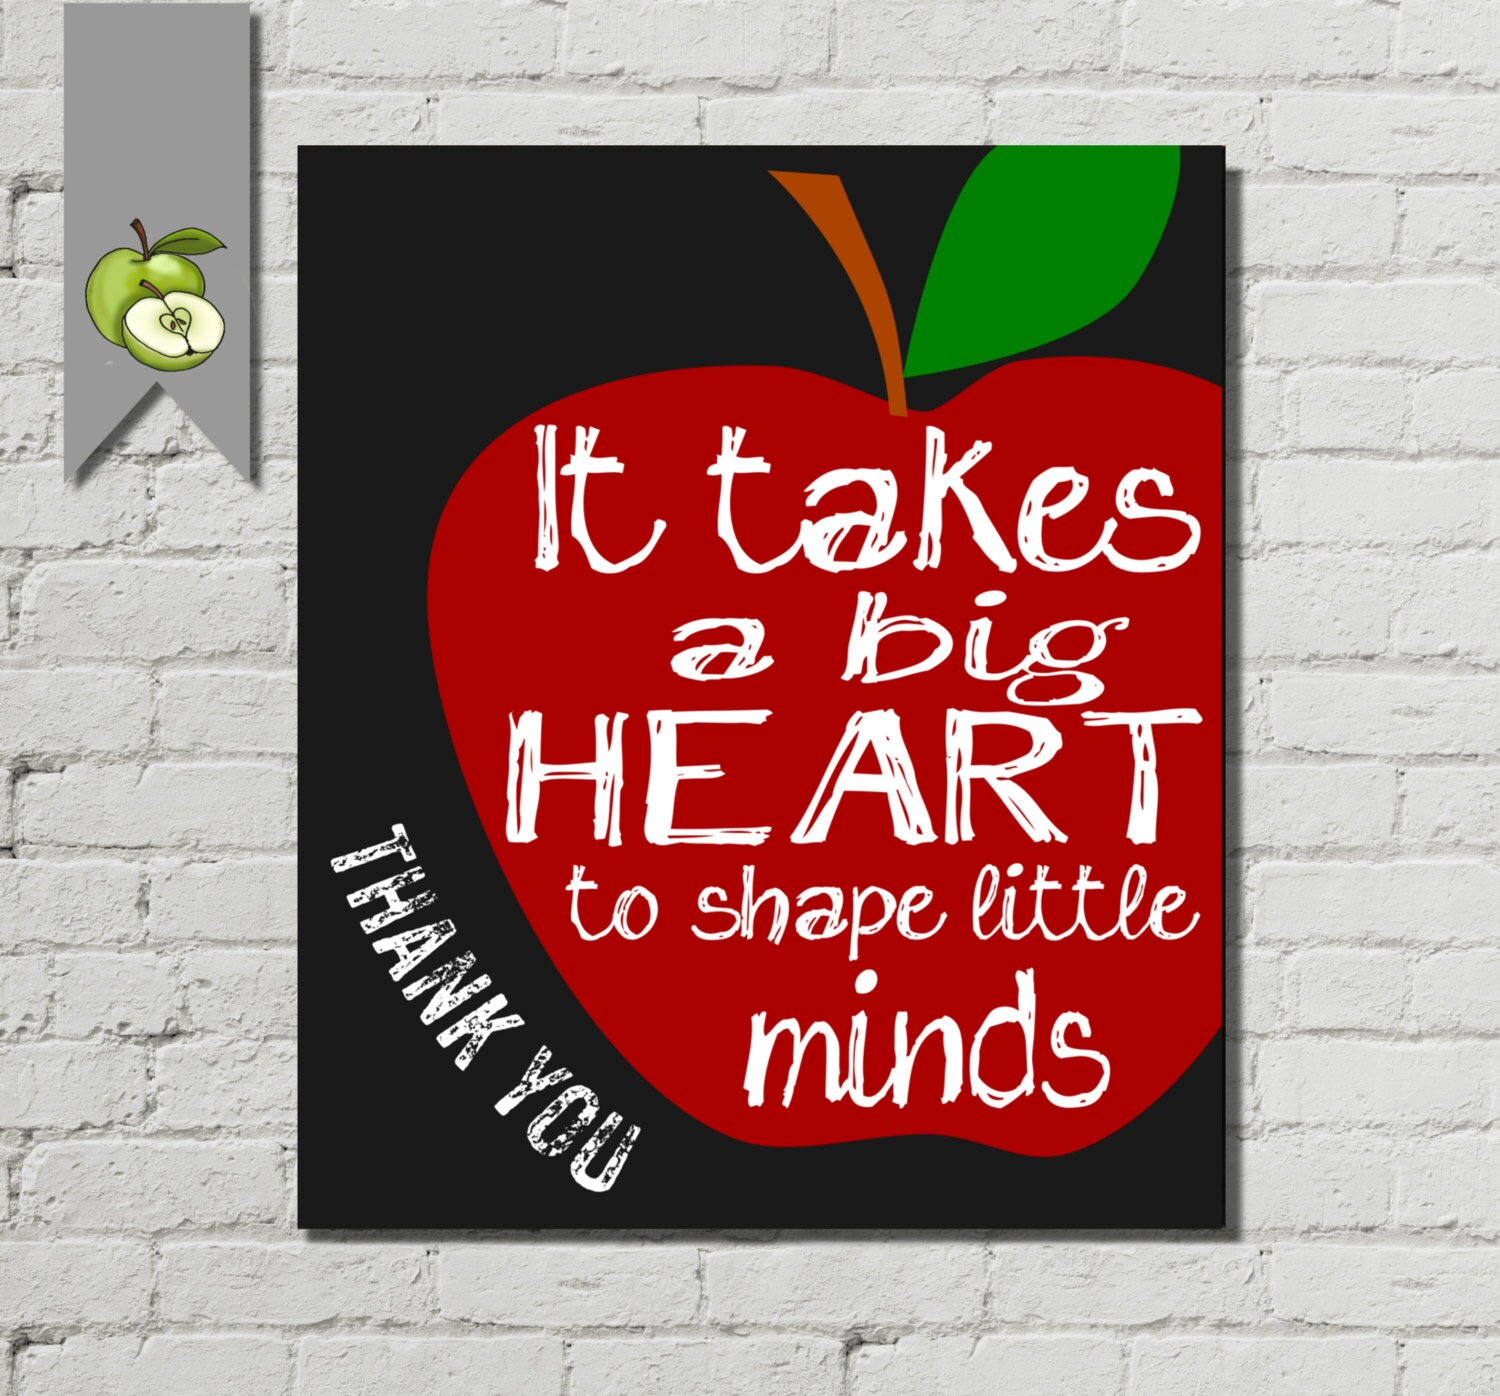 photograph regarding It Takes a Big Heart to Shape Little Minds Printable identified as Prompt It Normally takes A Huge Towards Form Minds -